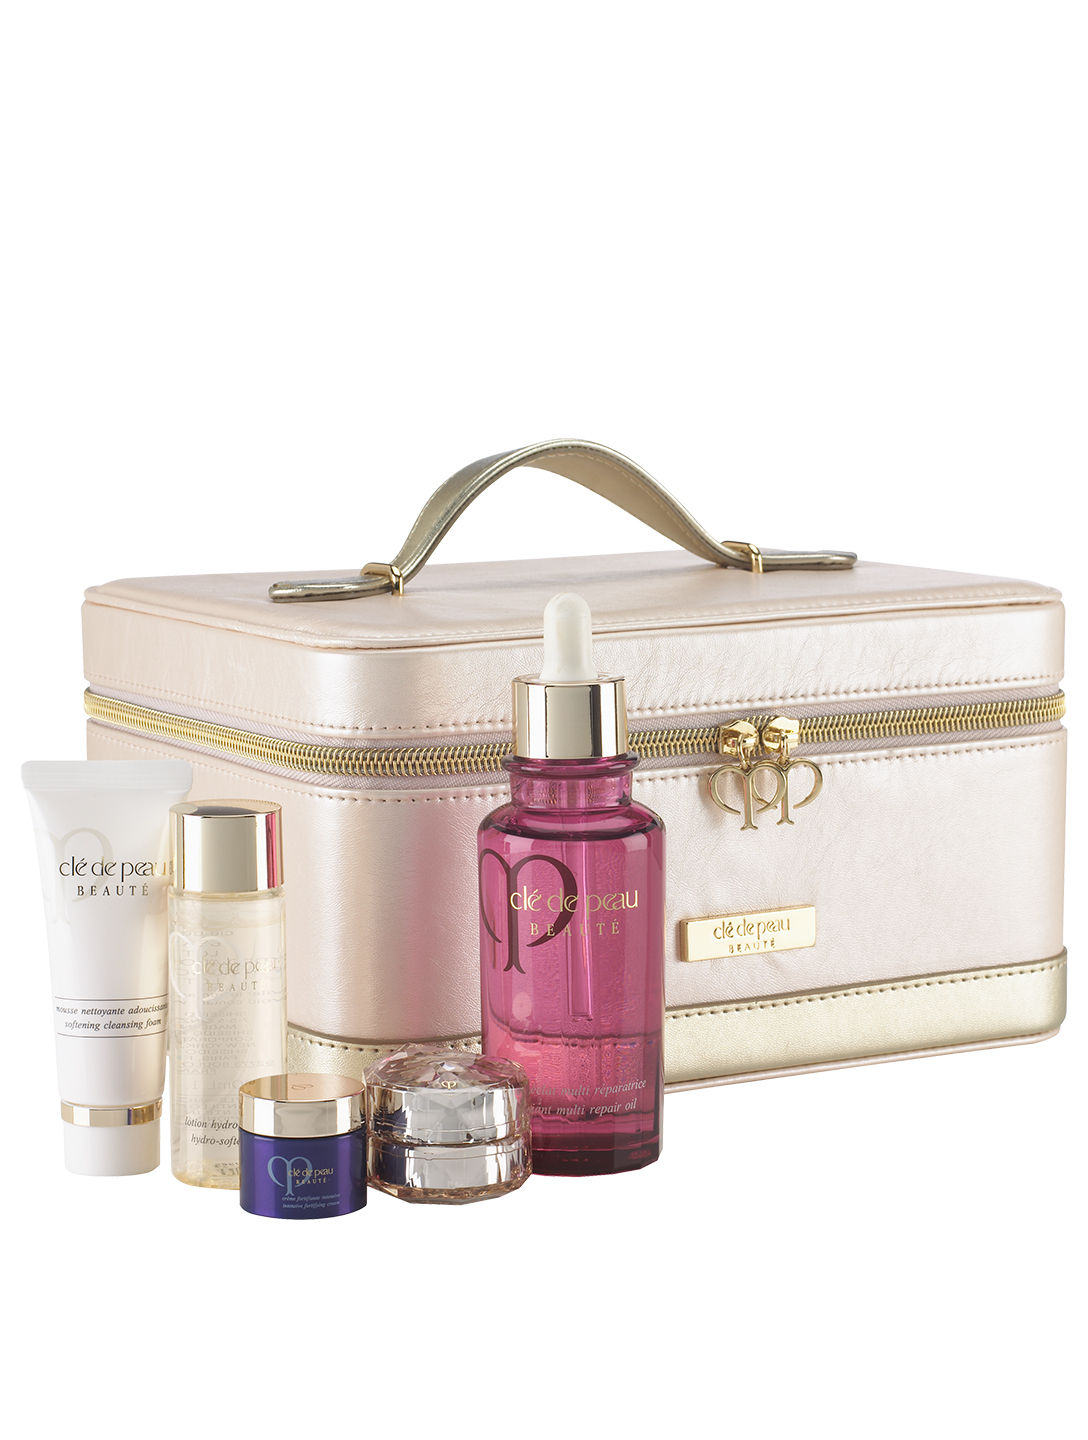 CLÉ DE PEAU BEAUTÉ Multi Repair Set Beauty